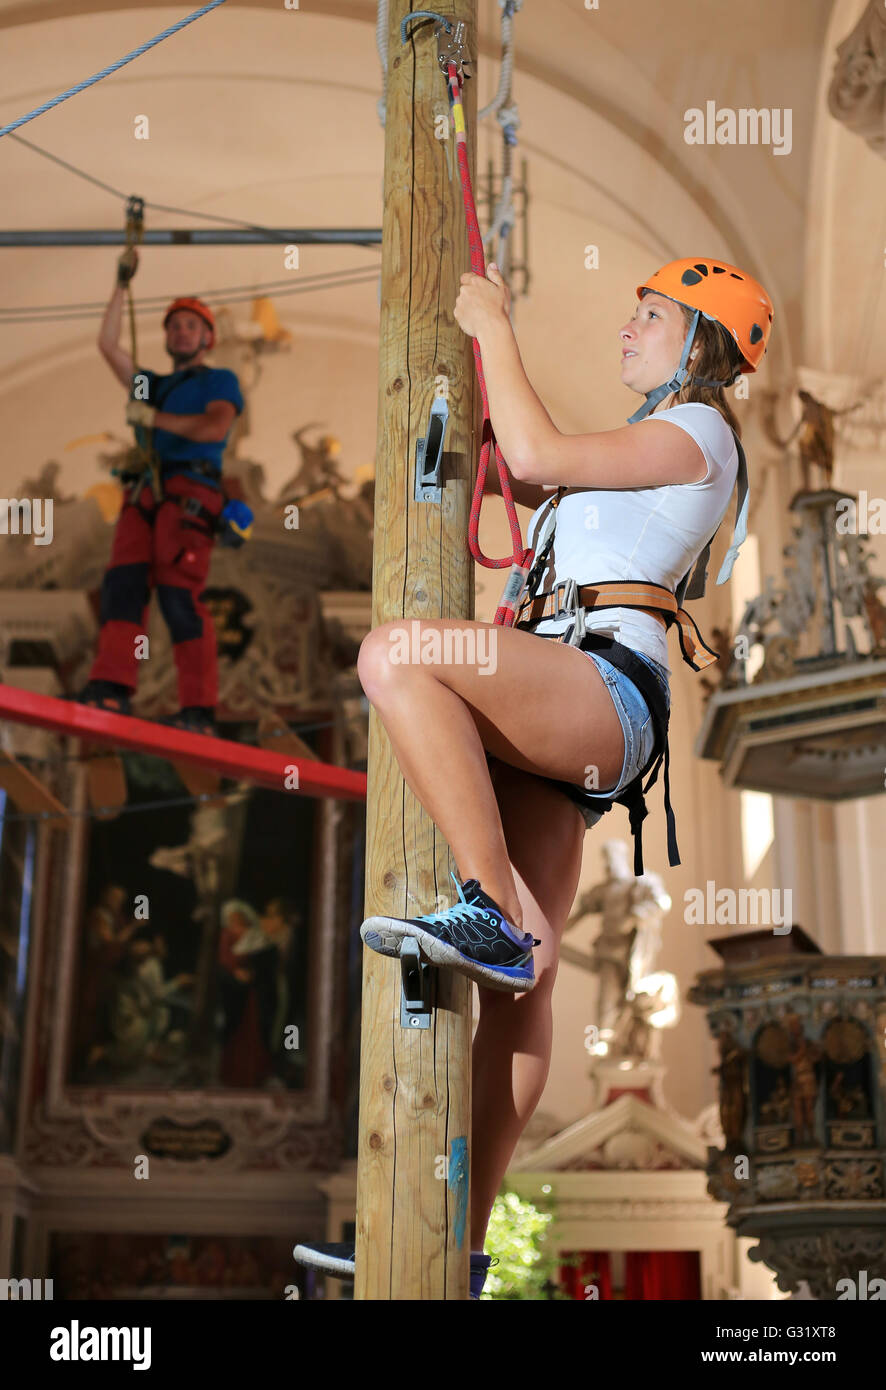 Theresa Rost is climbing in the church of St. Trinitatis in Zerbst, Germany, on 6 June 2016. The climbing project Stock Photo